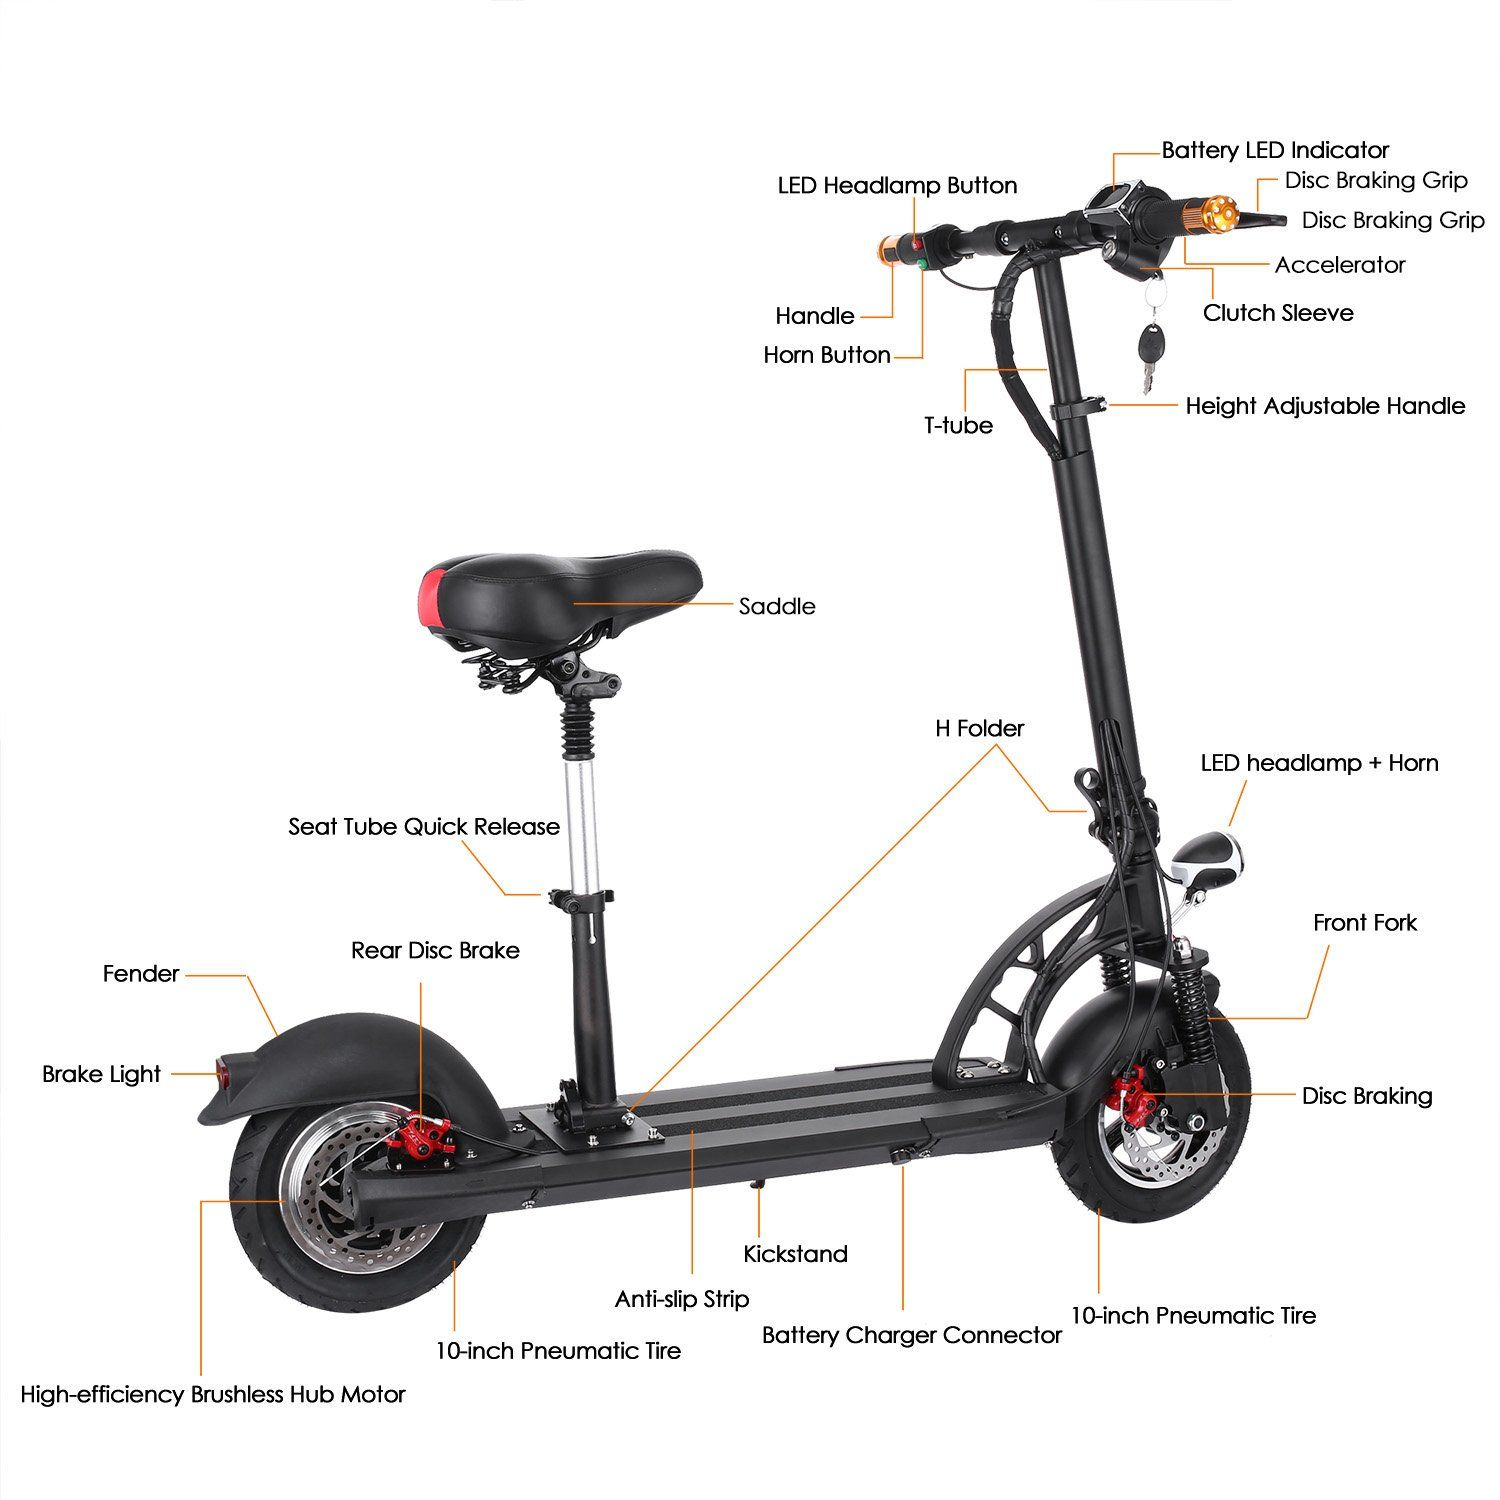 Weskate Electric Scooter For Foldable With Seatescooter Men Women Commuting Led Display9 Wide Deck And 10tire Max 300lbs Find Out More About